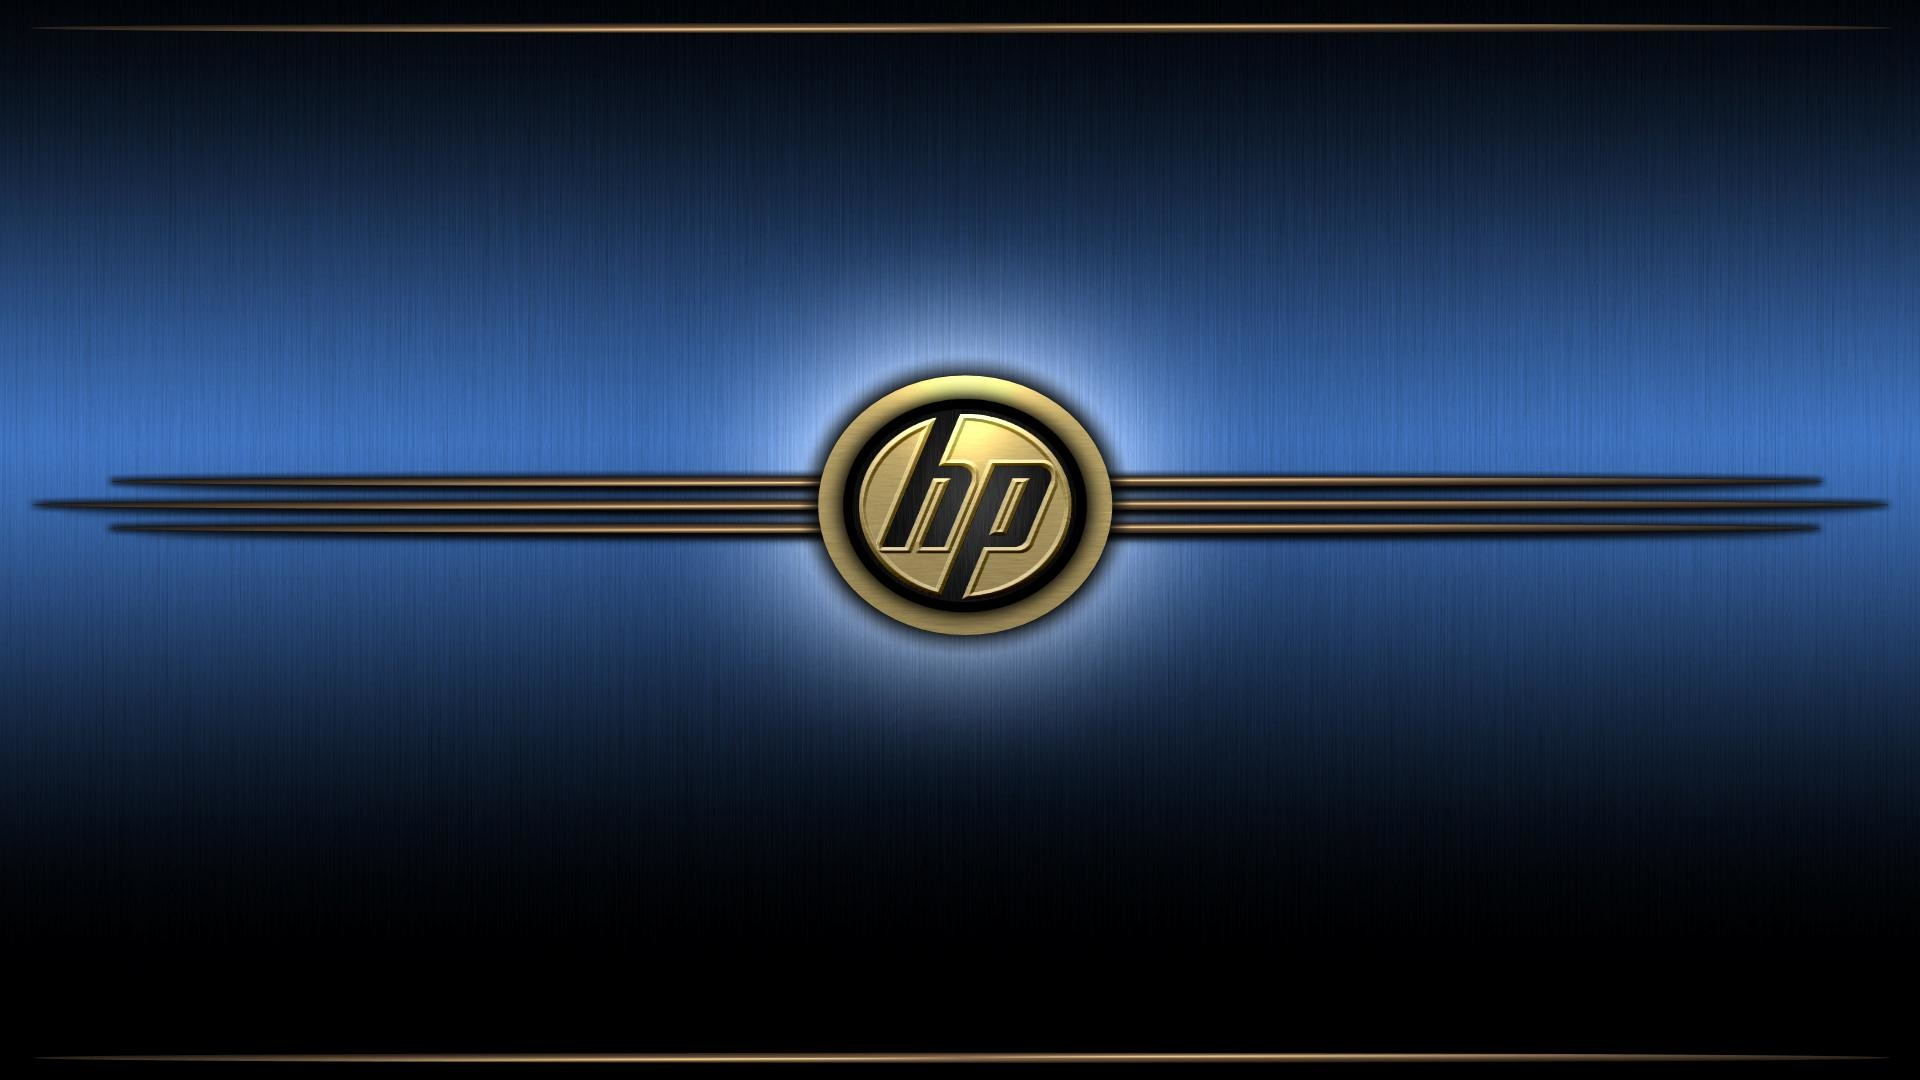 Hp Desktop Wallpapers HD Wallpaper Collections